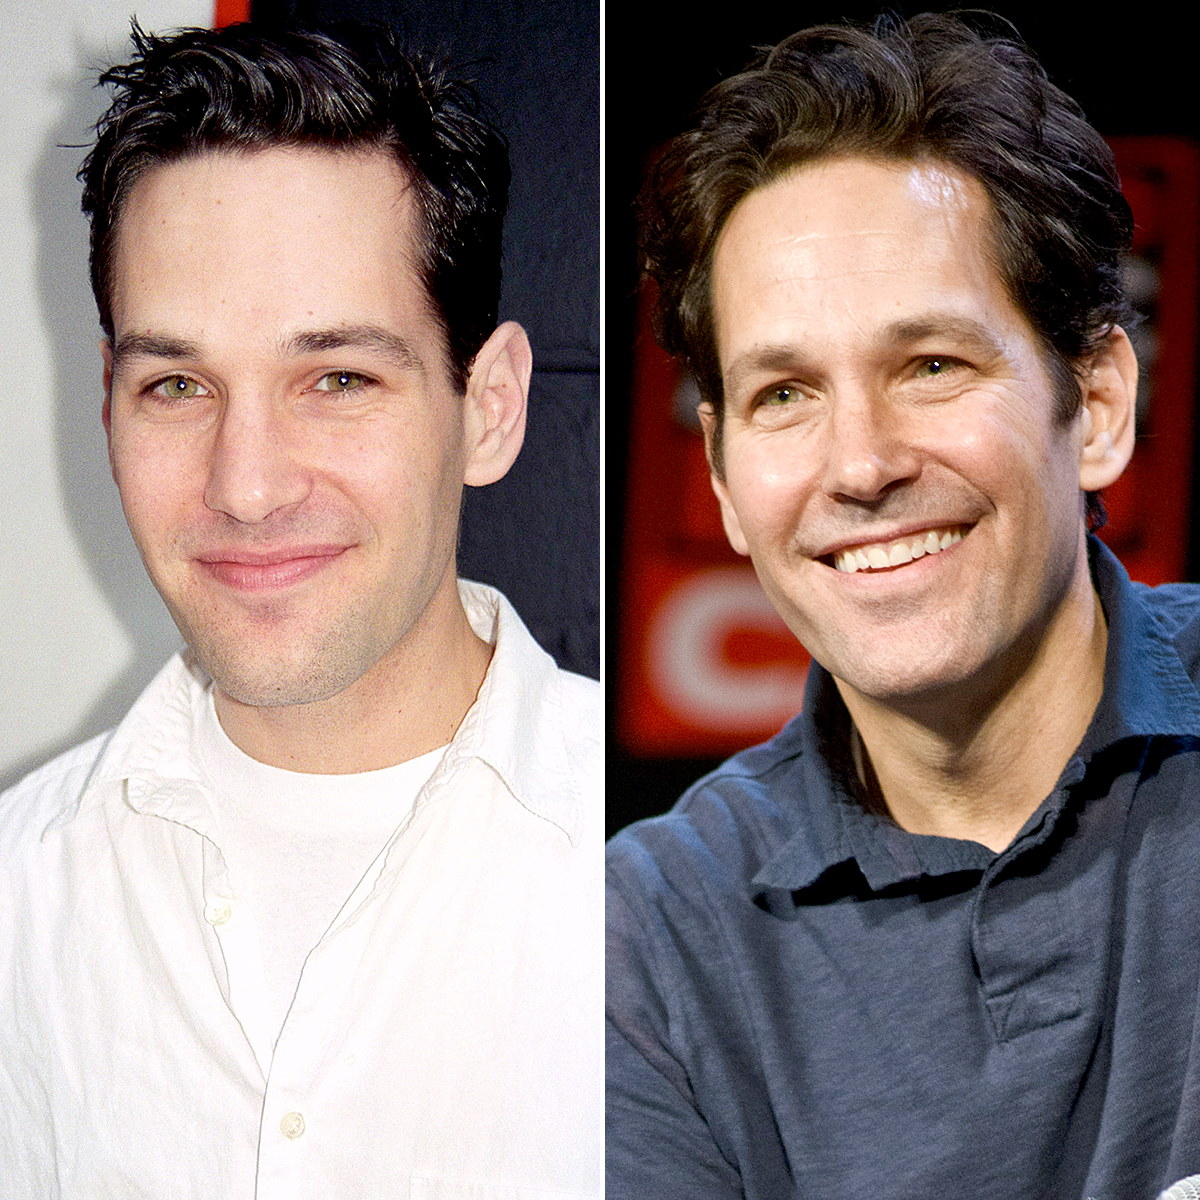 Paul-Rudd-youthful-skin - Paul Rudd (1997) and now (2019)